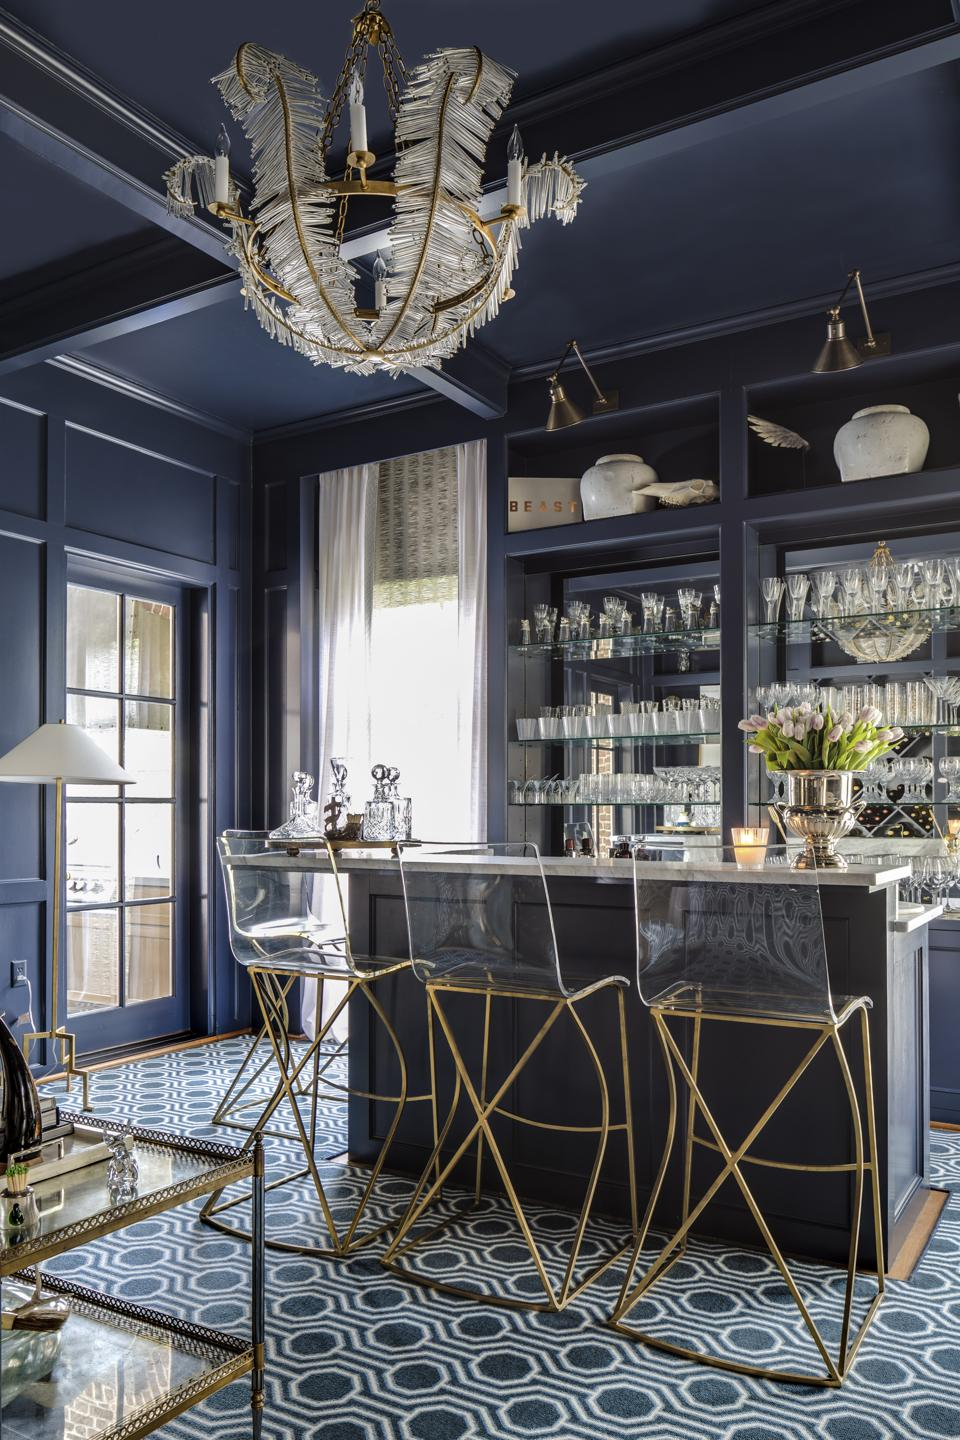 Home bar with blue lacquered walls and gold accents.